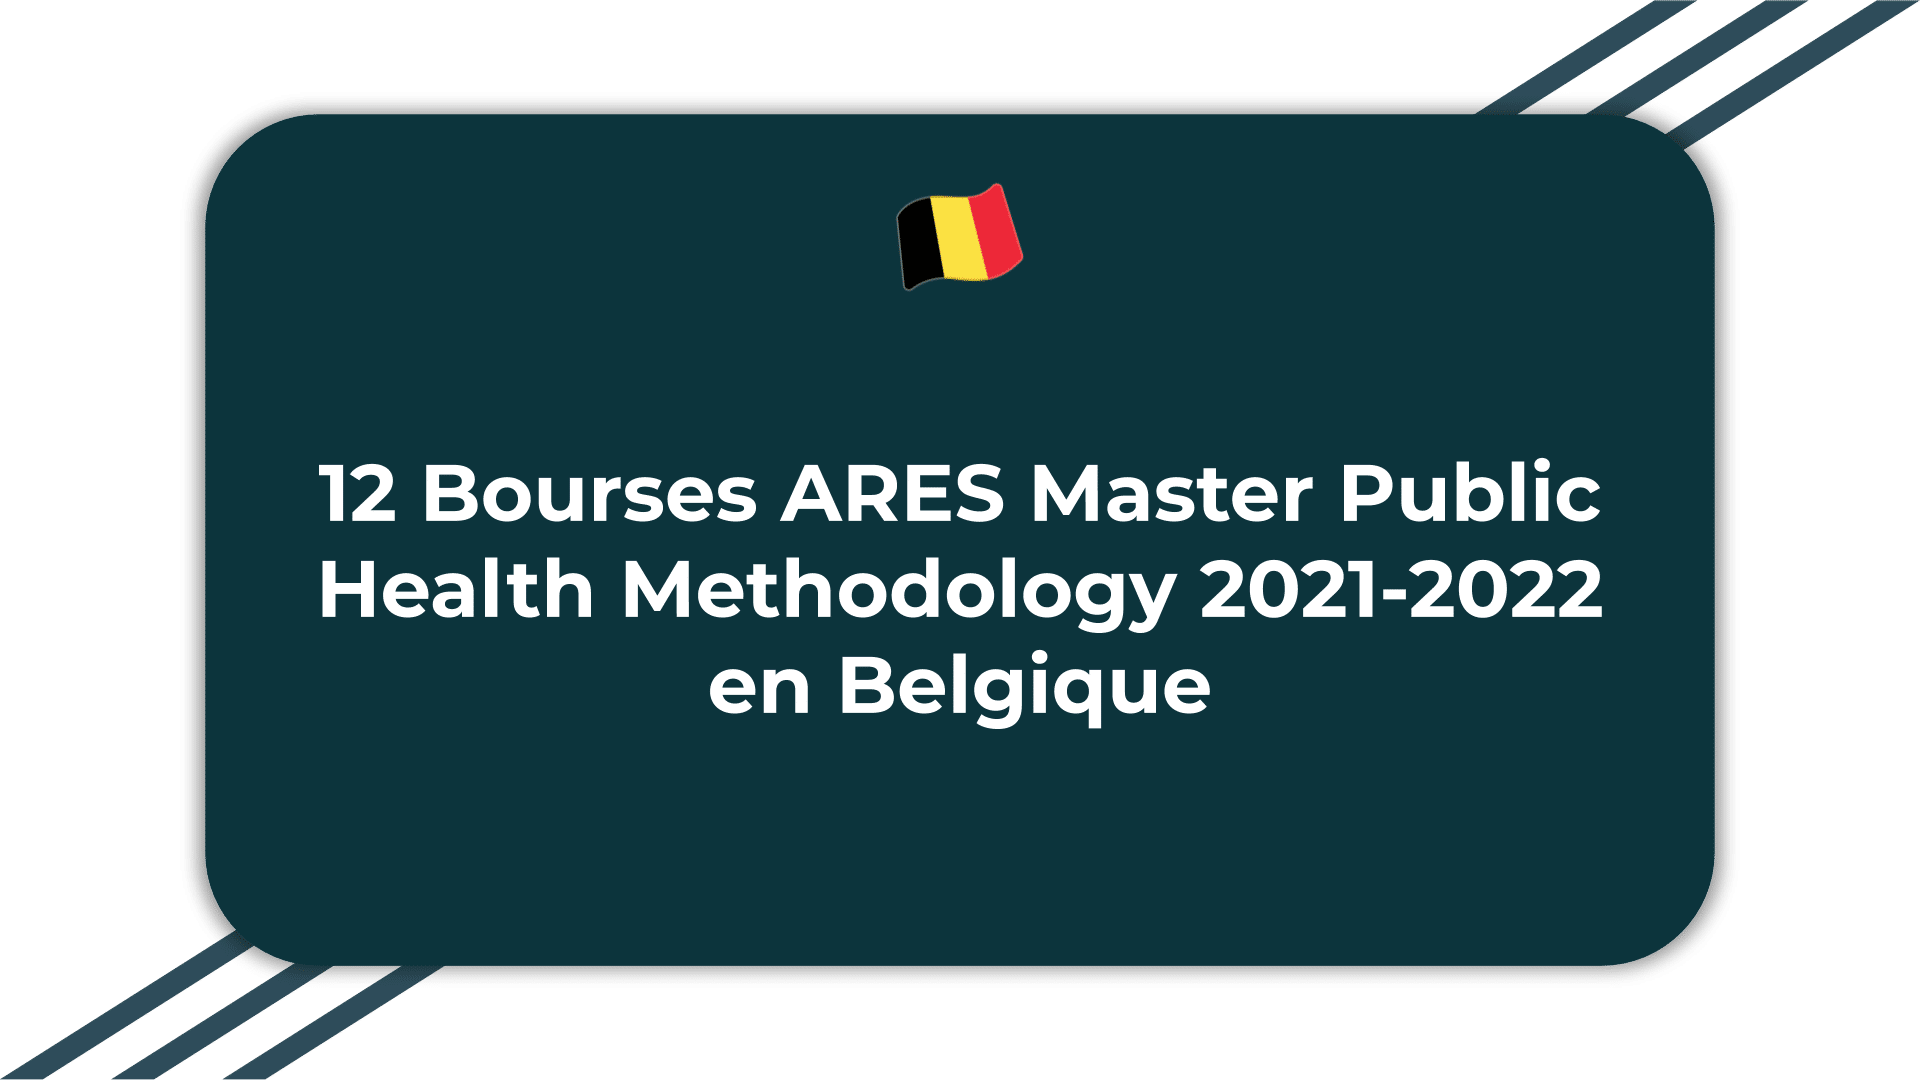 12 Bourses ARES Master Public Health Methodology